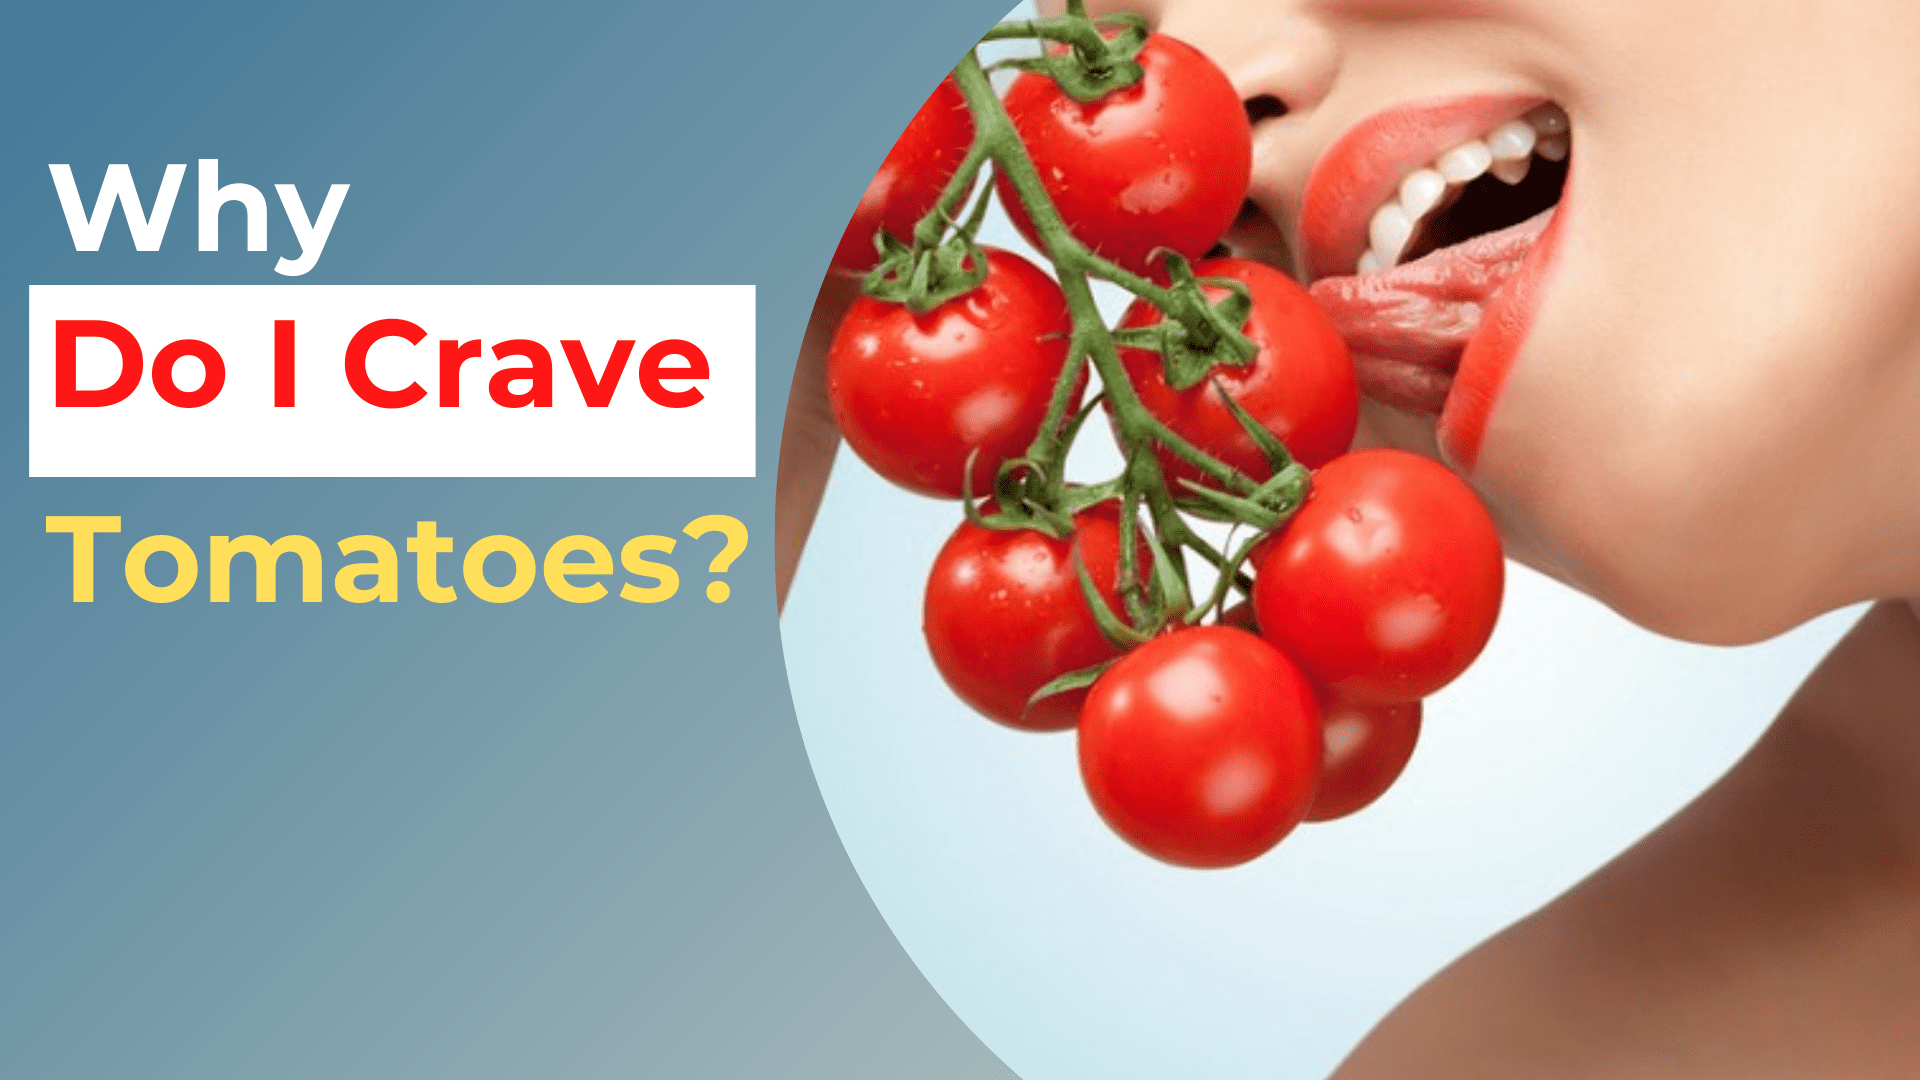 Why Do I Crave Tomatoes